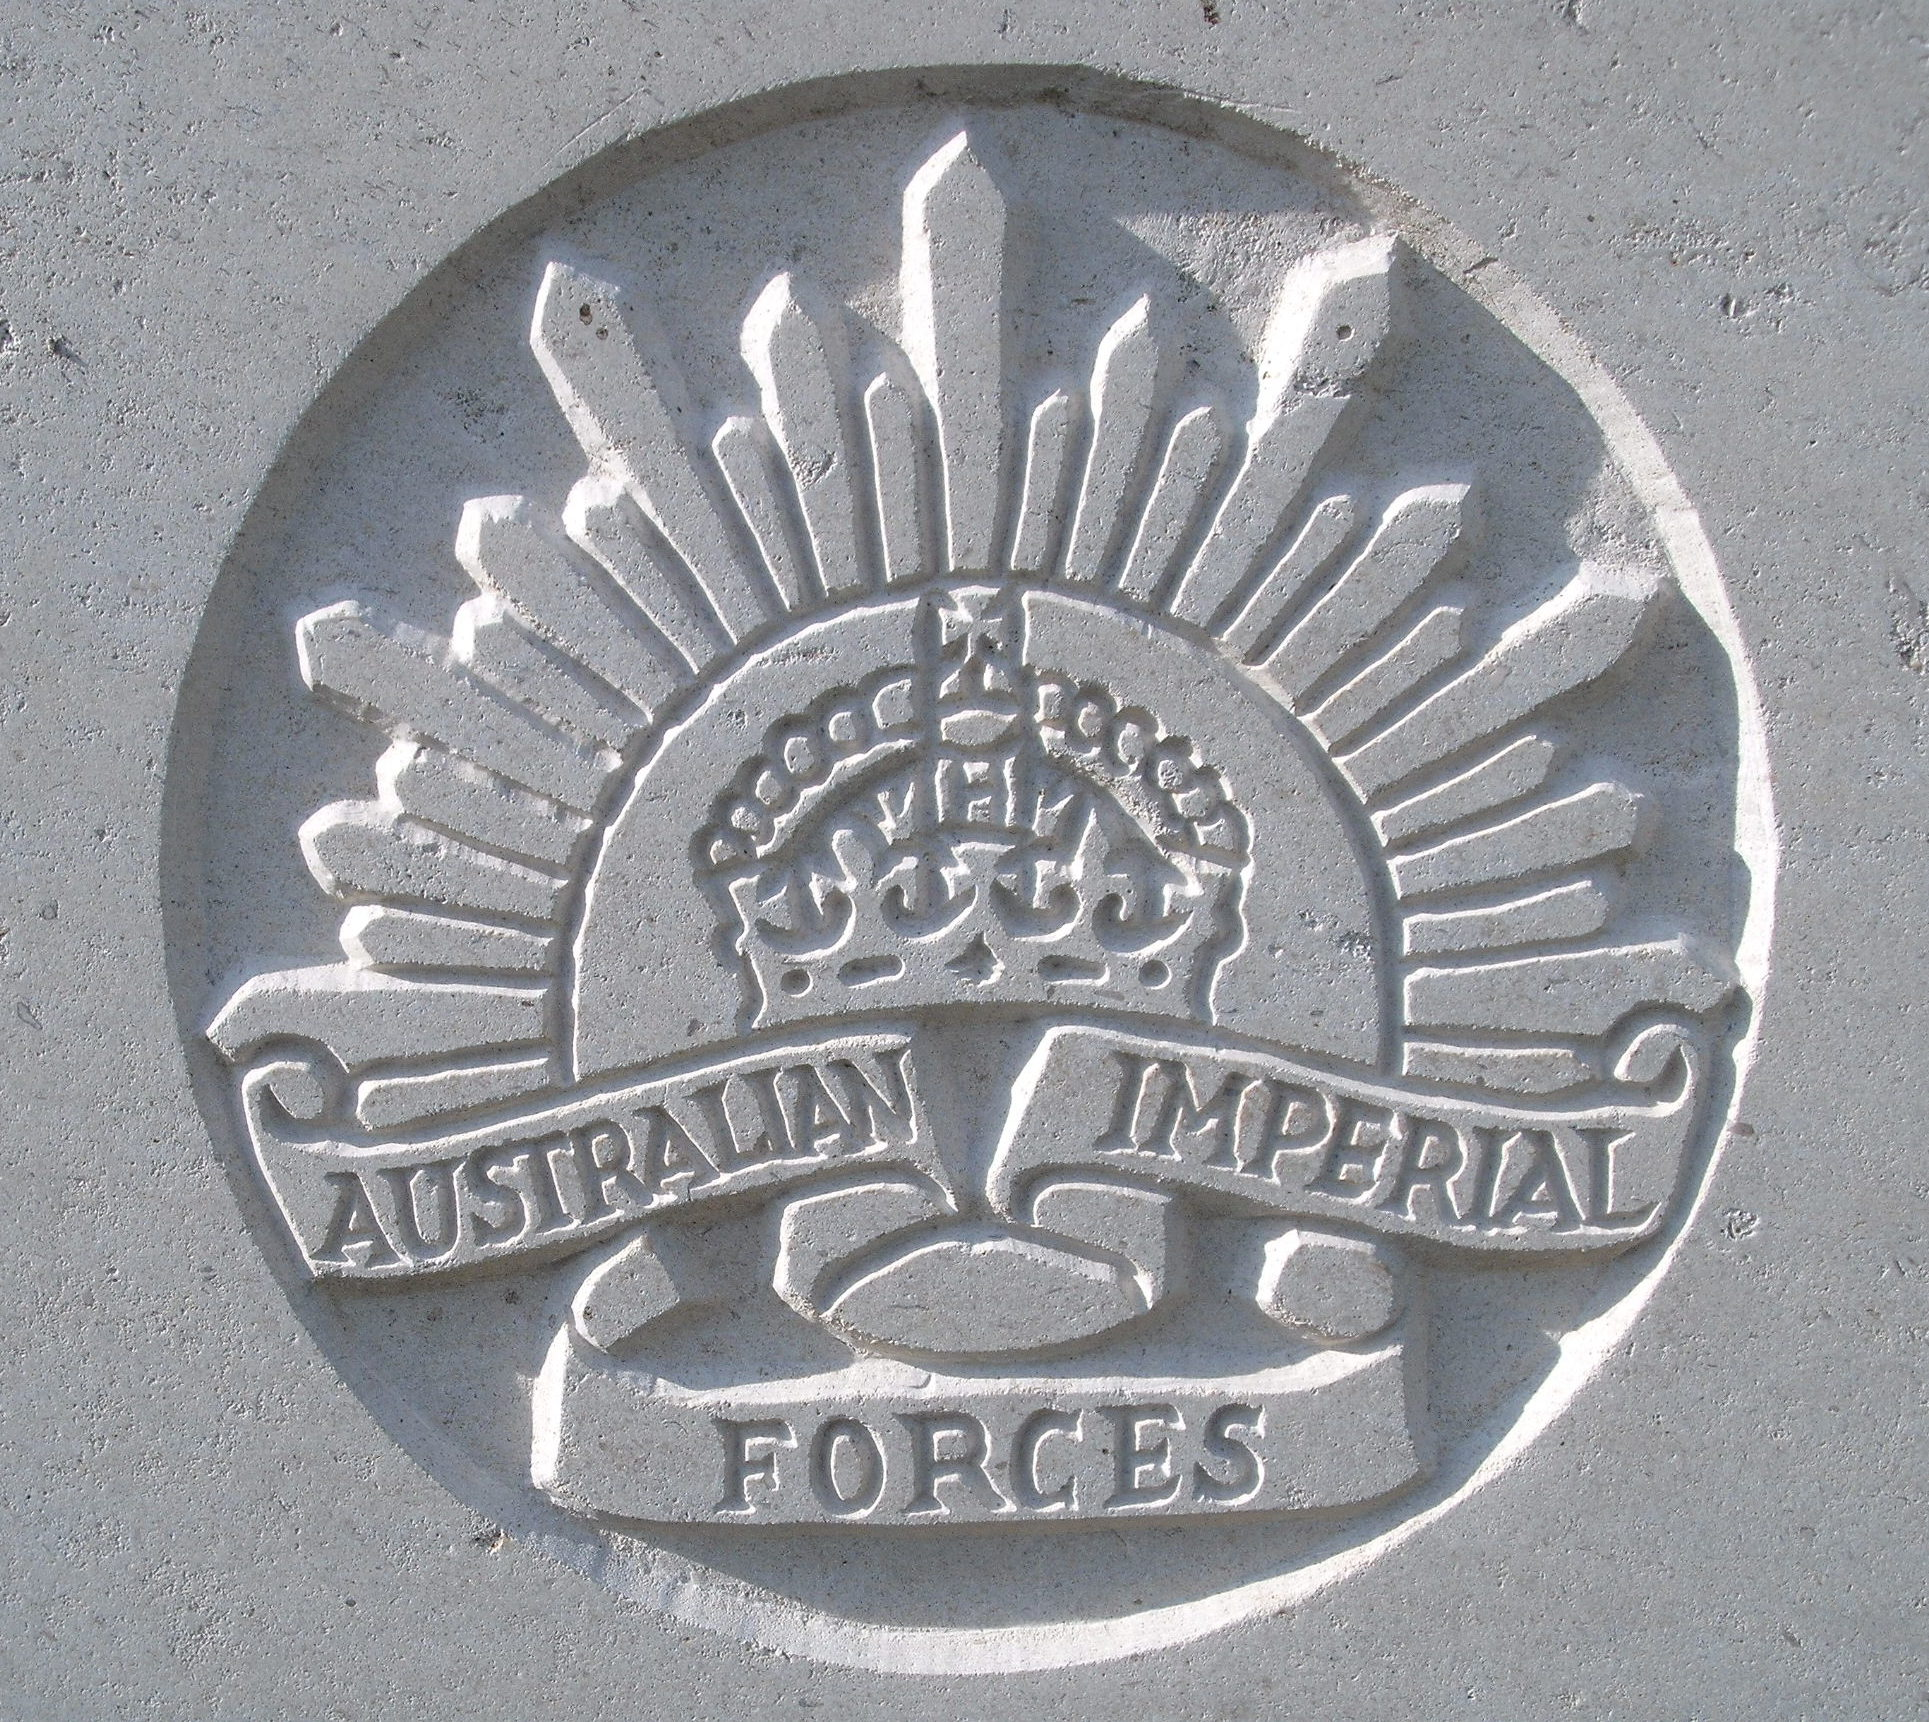 Capbadge of the Australian Imperial Force